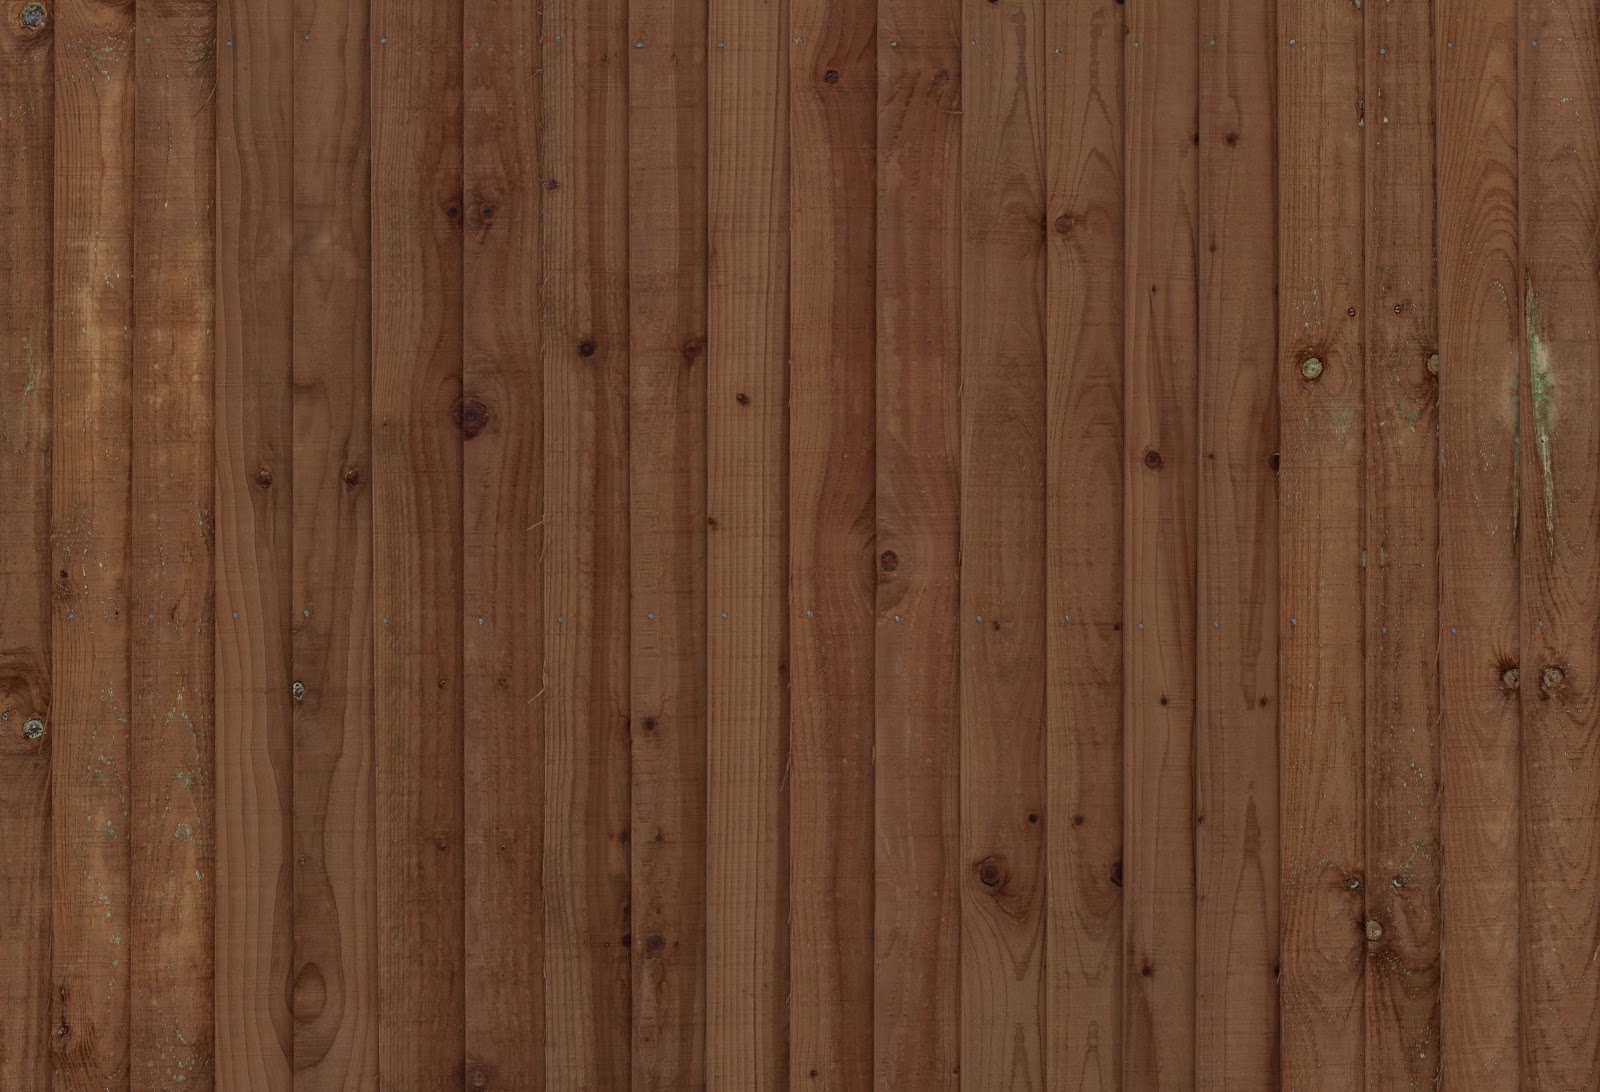 Wood Fence Texture : High Resolution Seamless Textures: Wooden Fence Texture